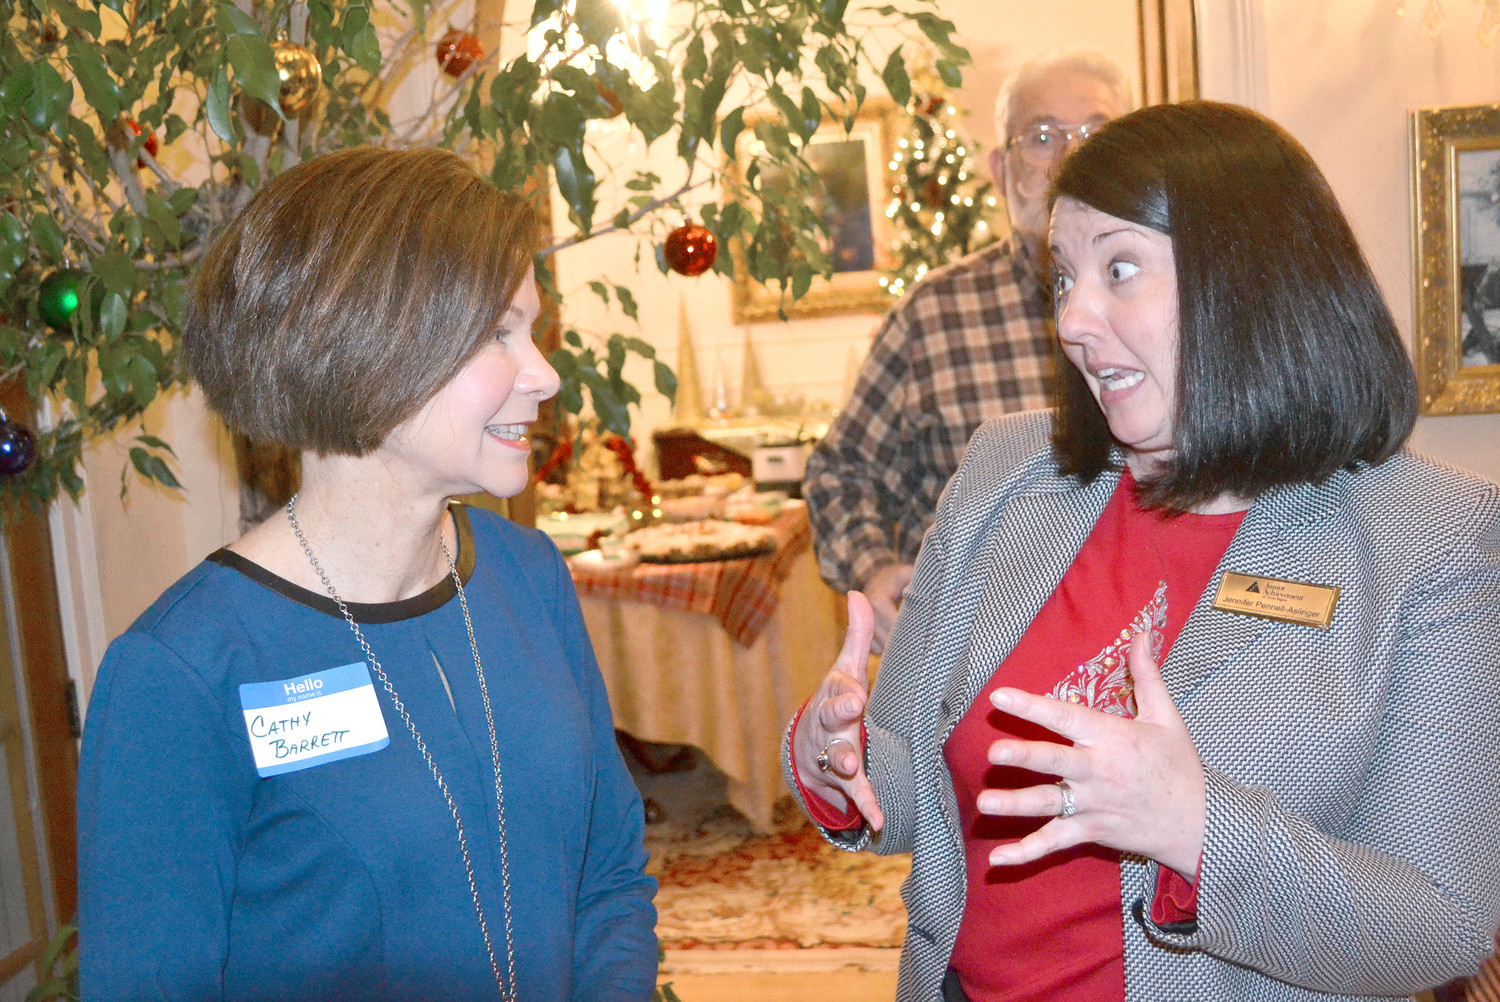 JENNIFER PENNELL-ASLINGER, new Junior Achievement president, speaks with Cathy Barrett, who served in that position in the late 1980s and early 1990s.